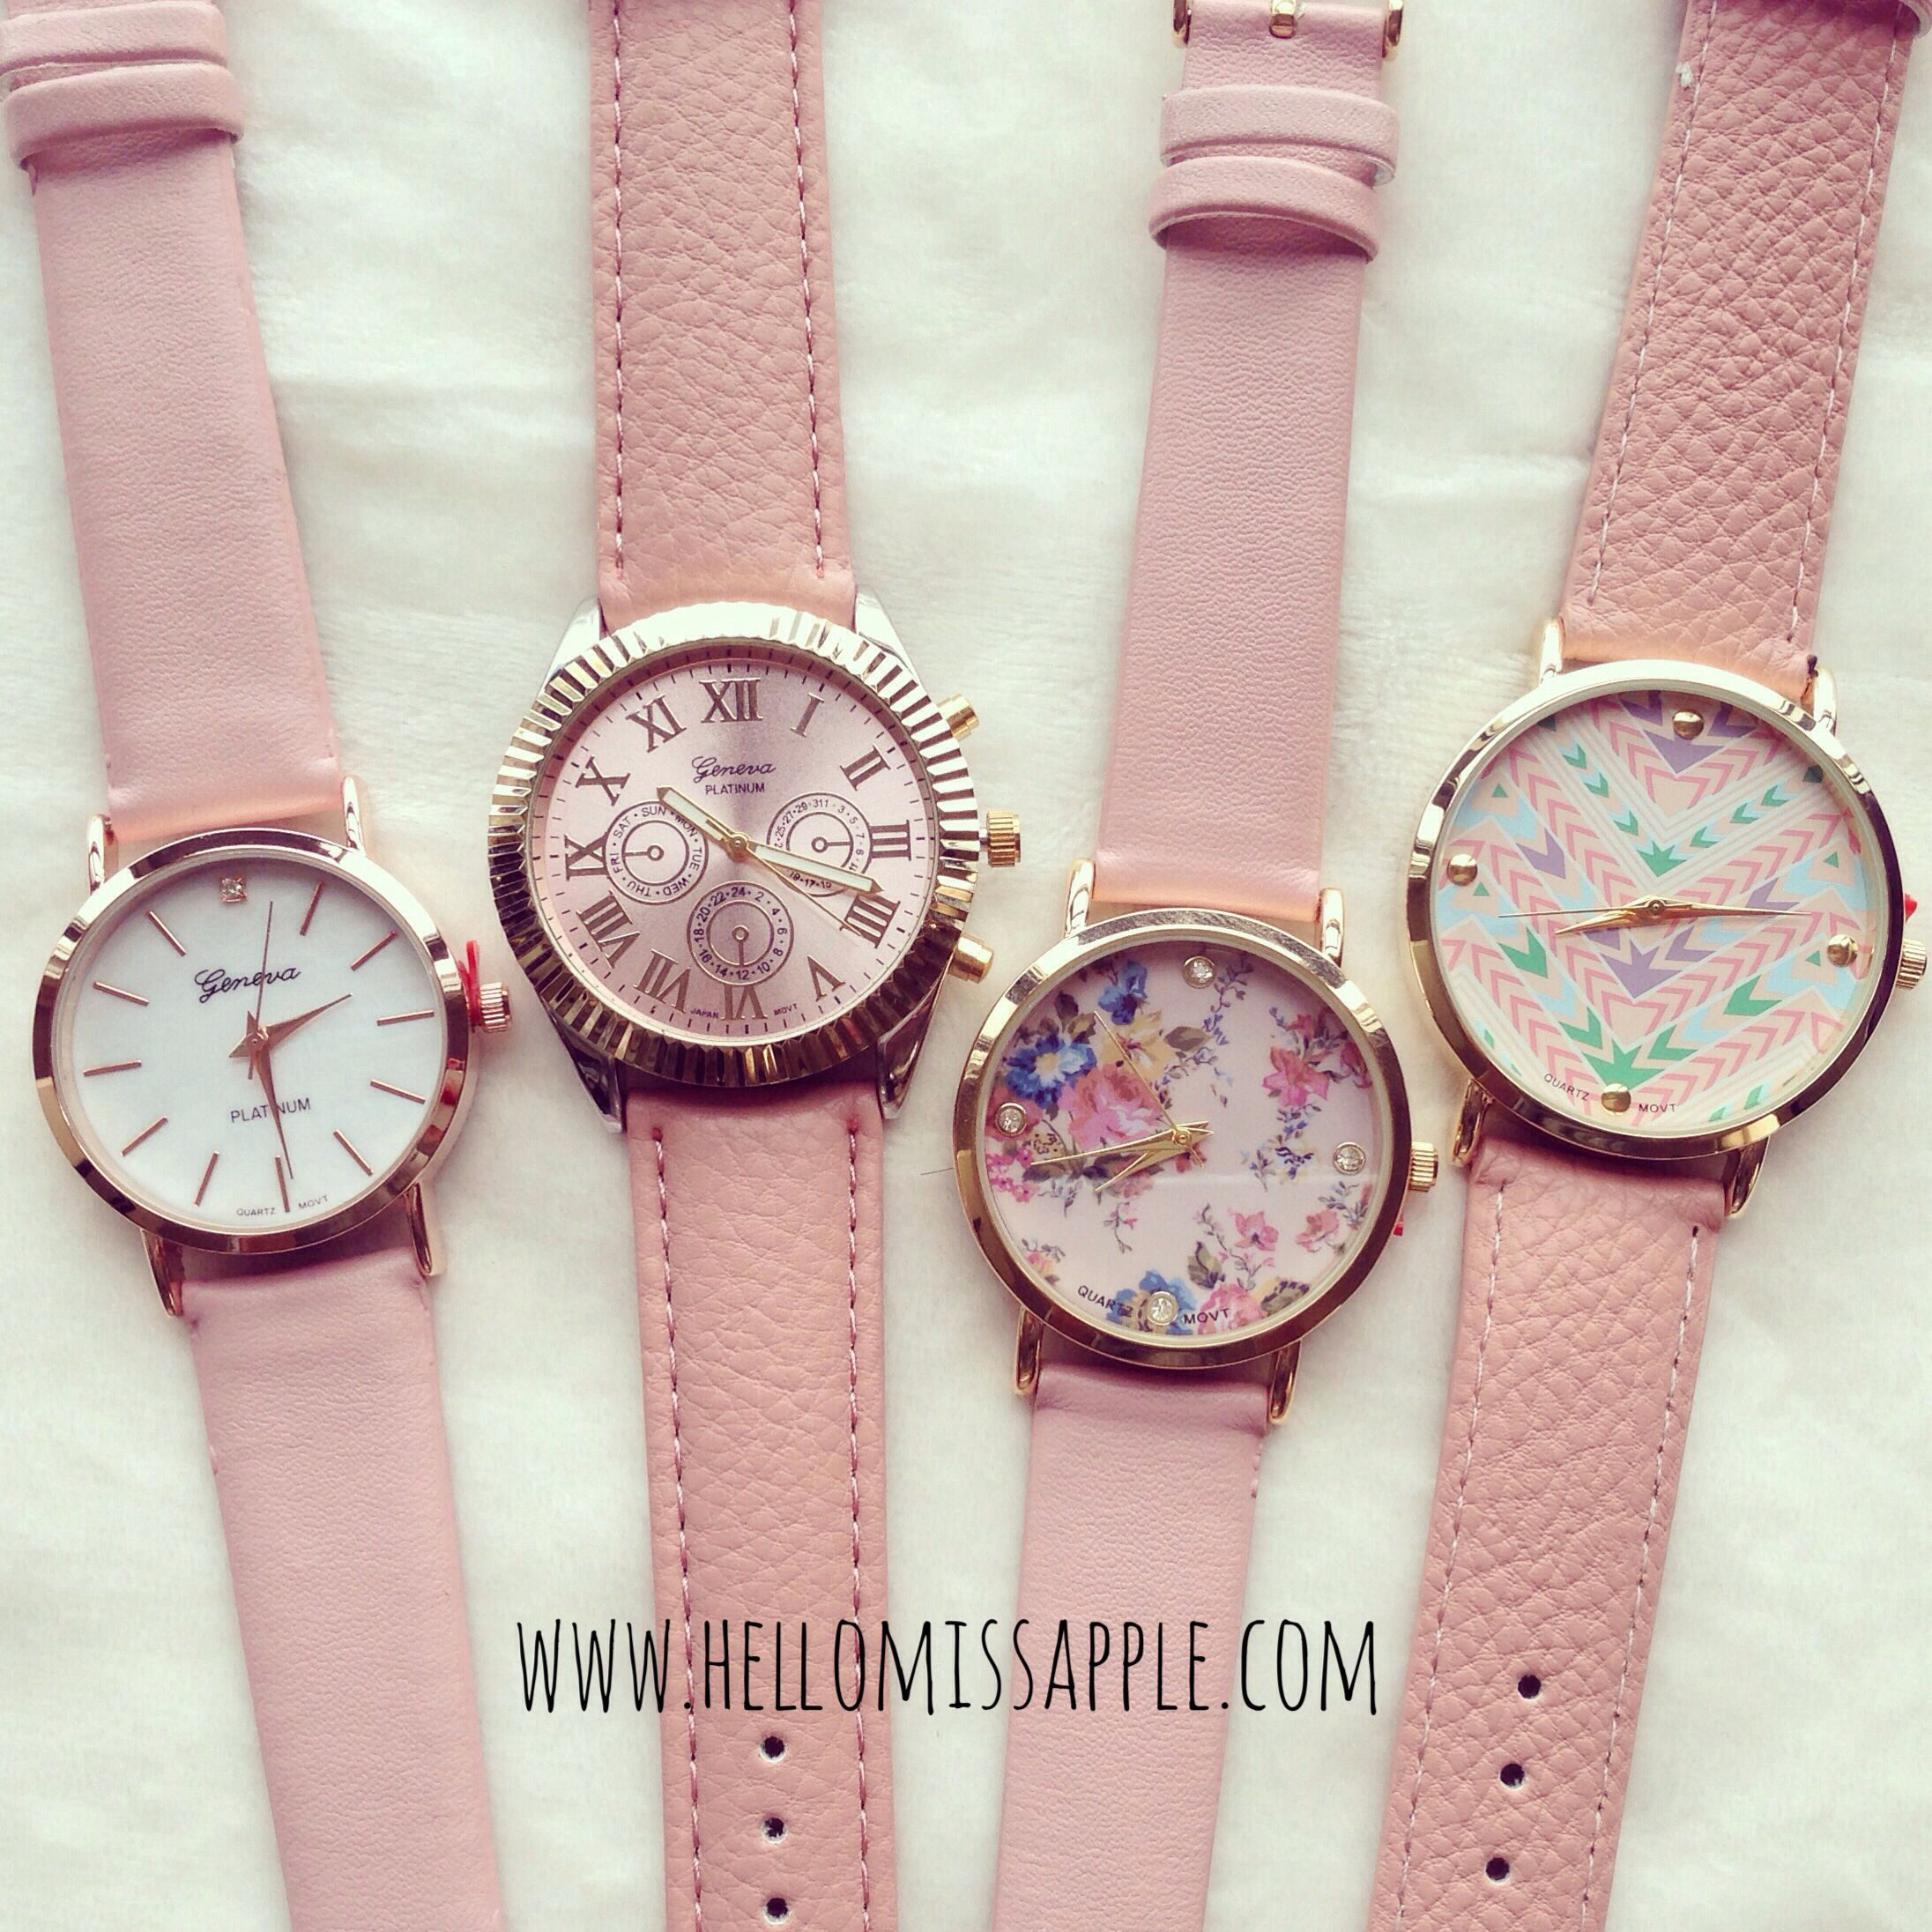 Trendy watches from Hello Miss Apple www.hellomissapple.com #watch #fashion #hellomissapple